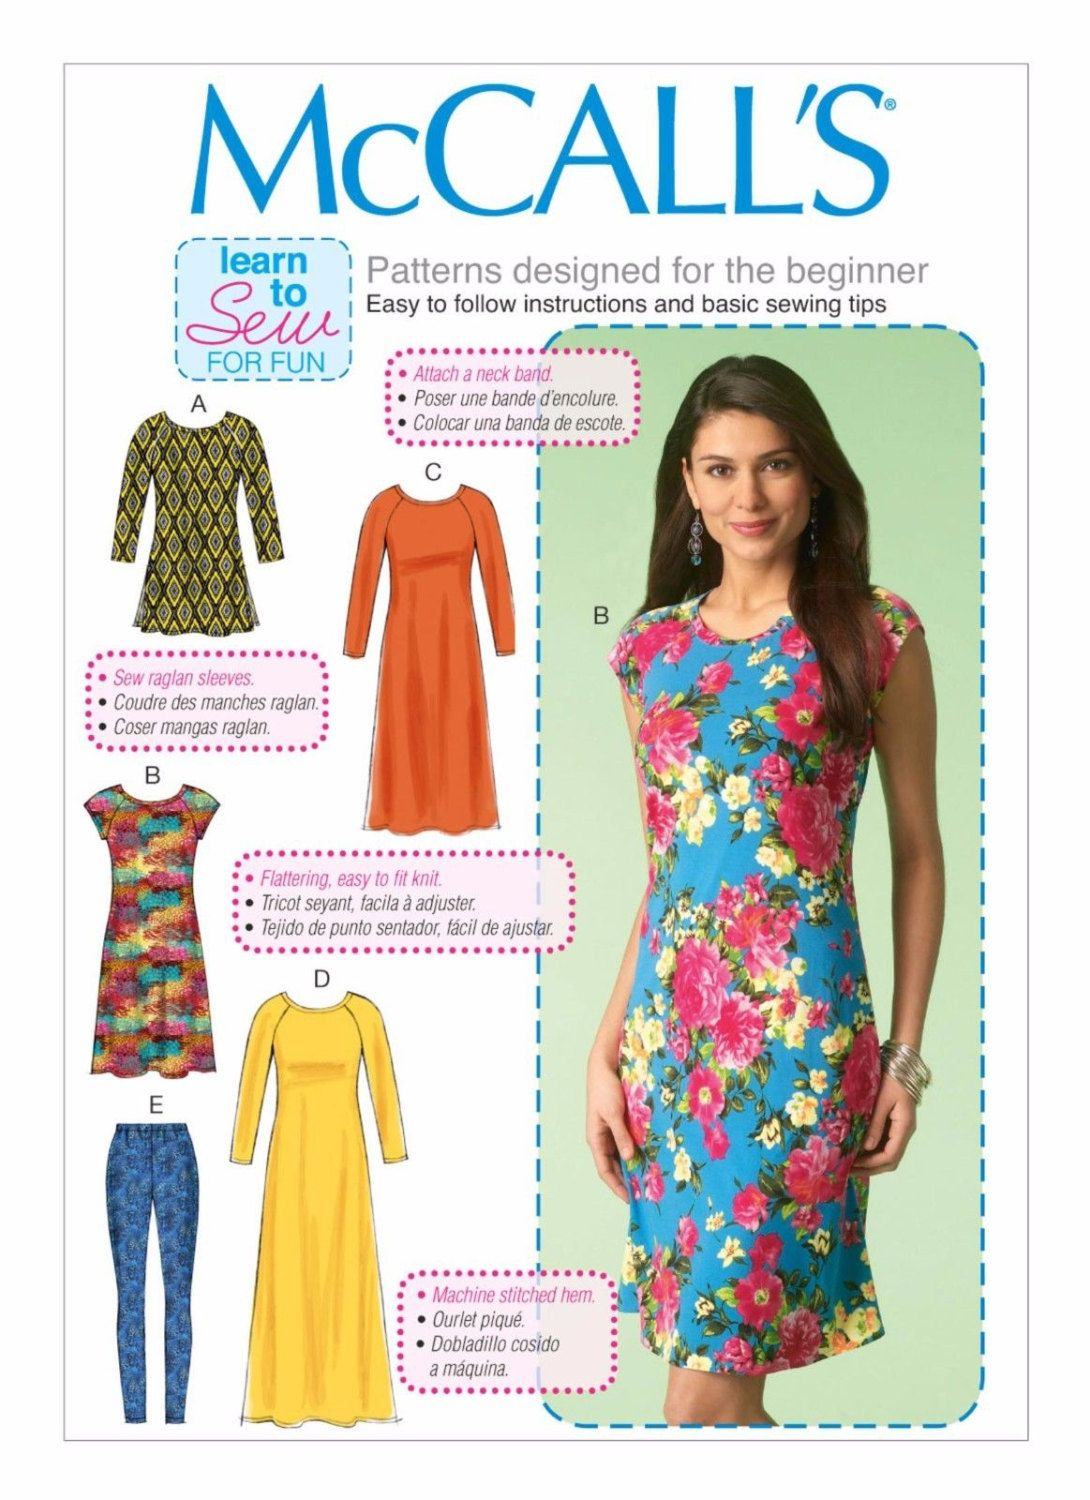 Learn to Sew Pattern - McCalls 7122 - New Sewing Pattern, Sizes X ...